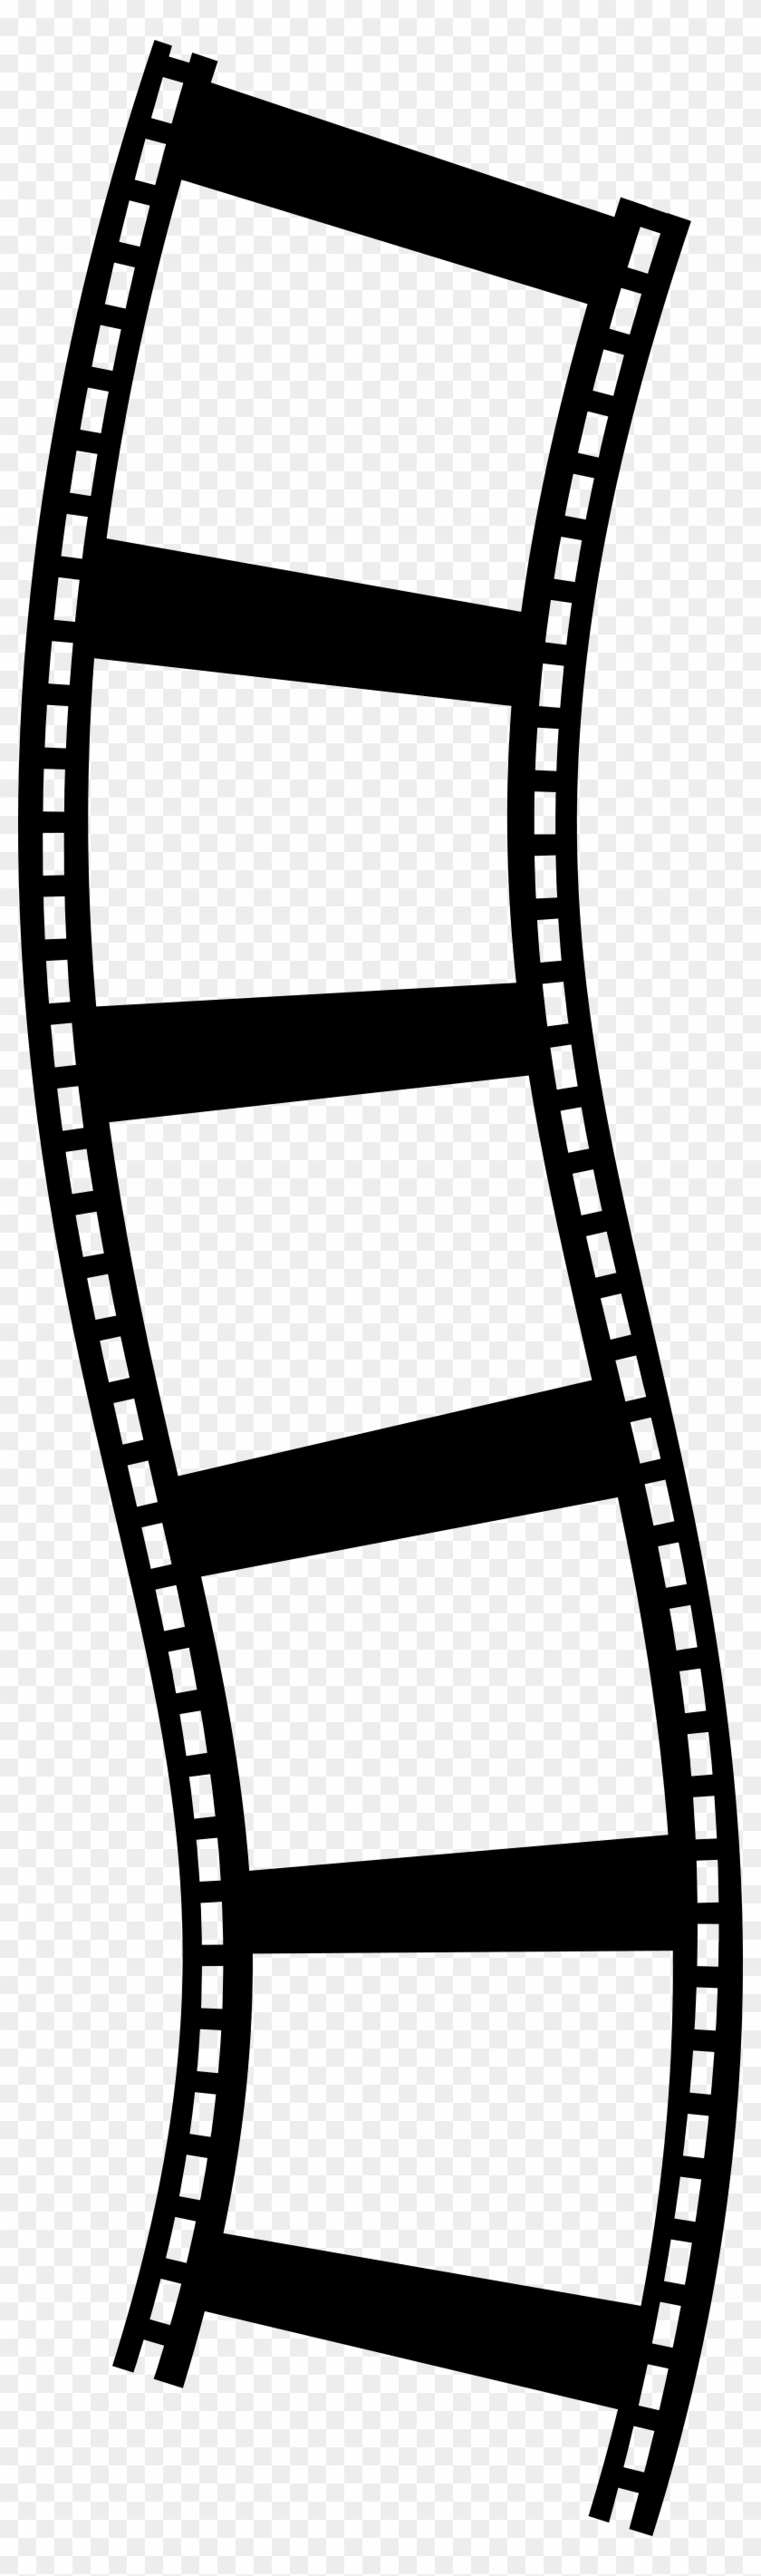 Movie Clipart Scroll - Film Strip Clip Art #67706